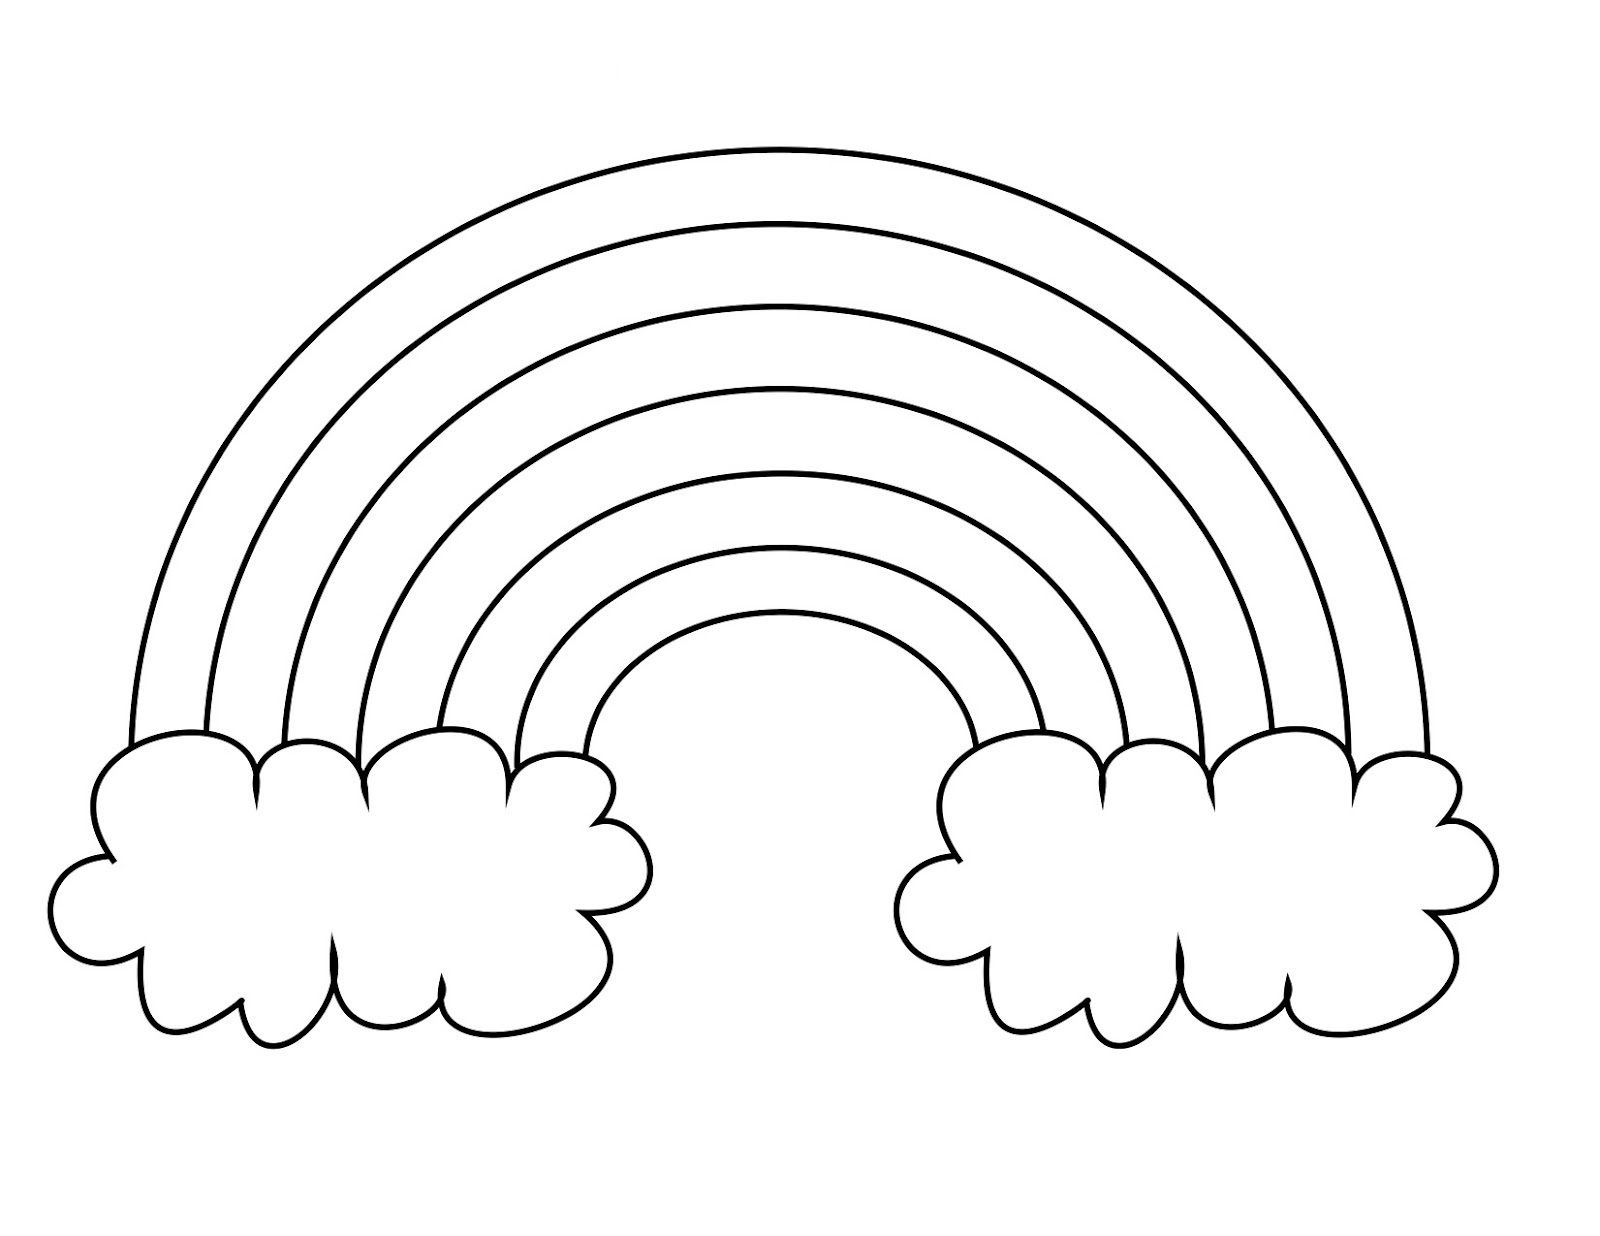 legged rainbow clouds coloring pages for kids printable rainbows coloring pages for kids